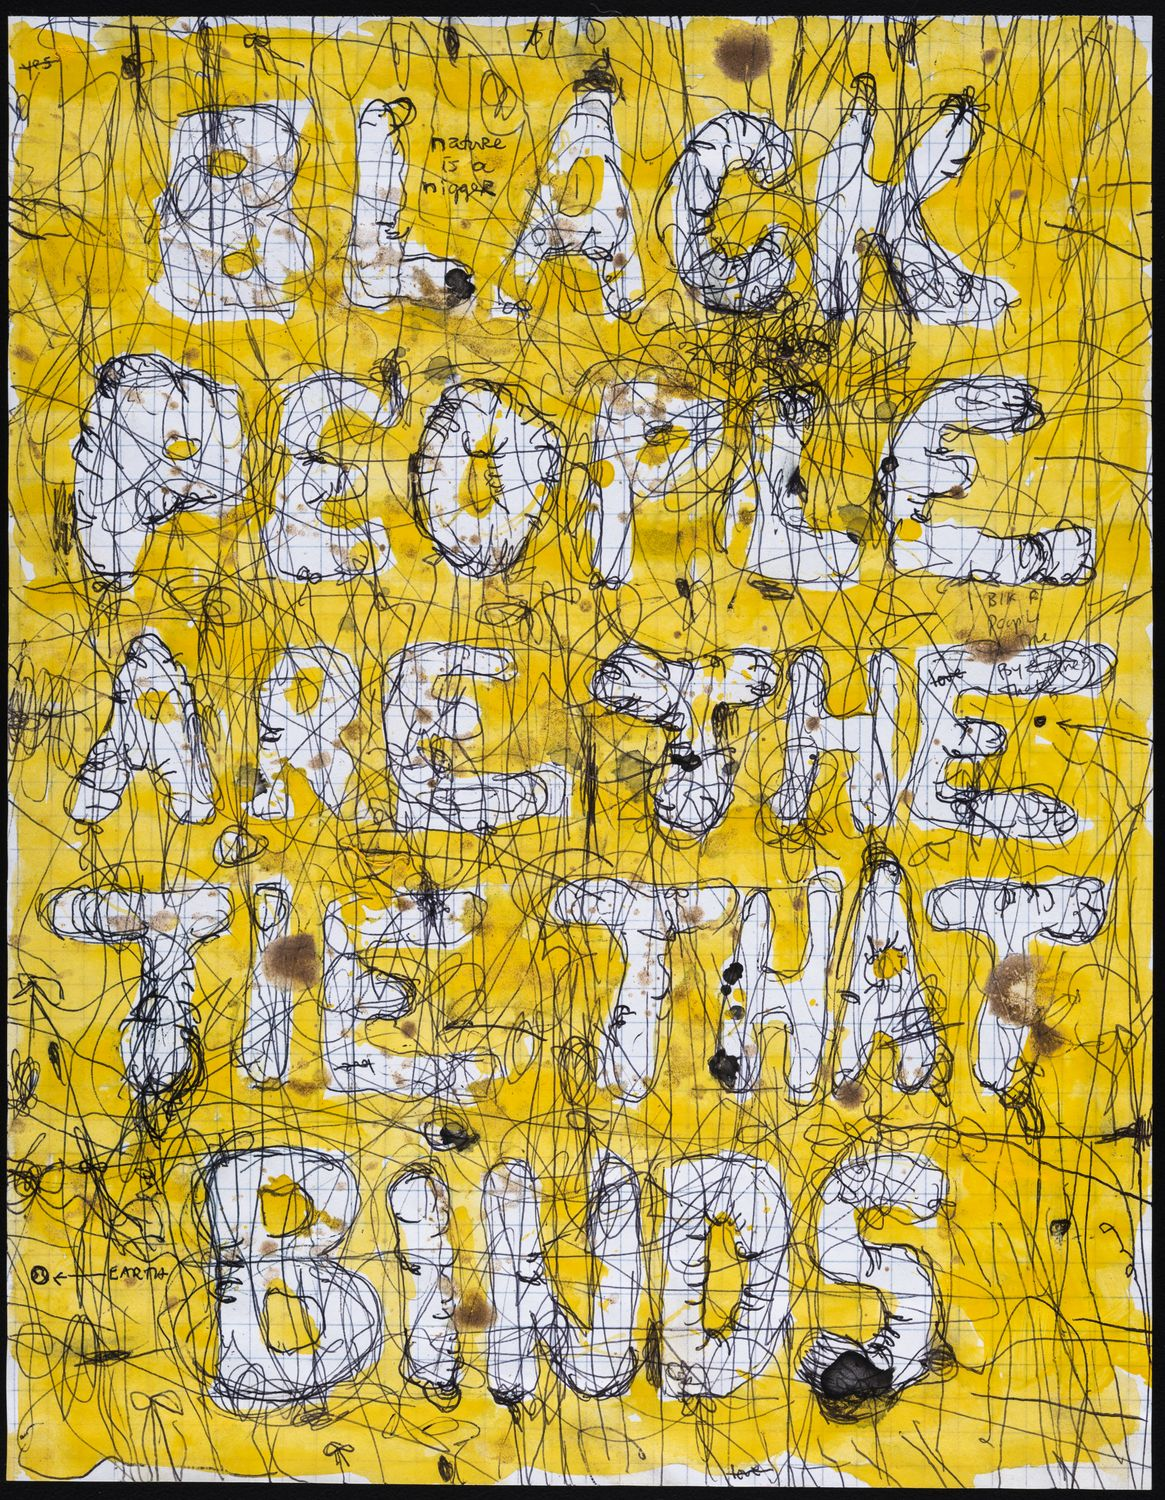 Pope.L - Skin Set Drawing: Black People Are The Tie That Binds